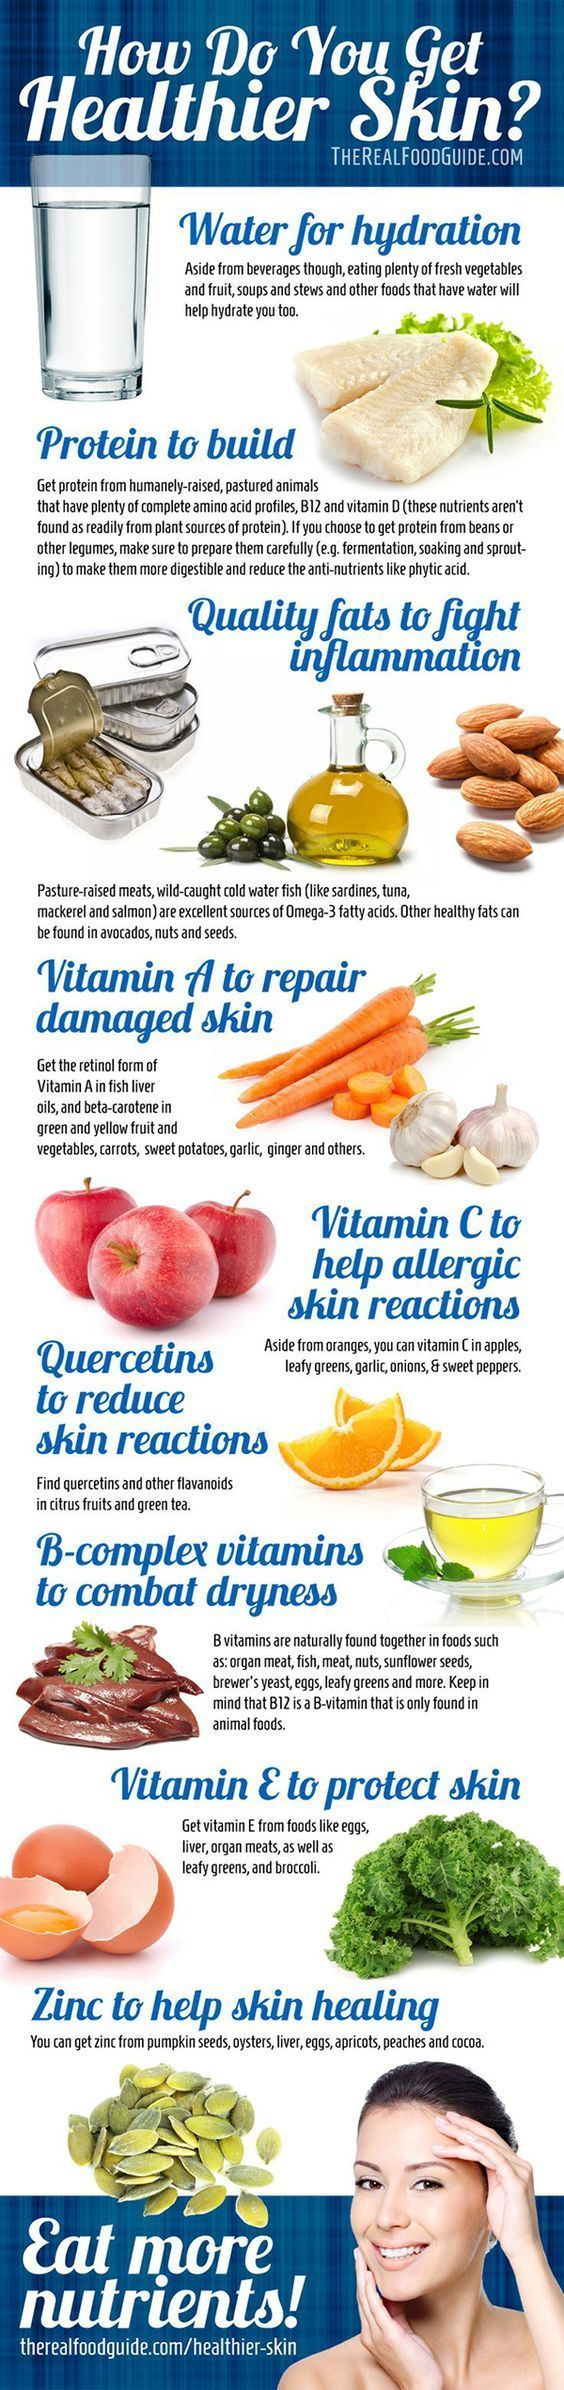 Anti-Aging Tips & Secrets For Healthier Skin. For more immediate results learn about Instantly Ageless; the world's best fast acting anti aging wrinkle cream. Noticeable results in less than 2 minutes that last all day! #instantlyageless #wrinkle #antiagi